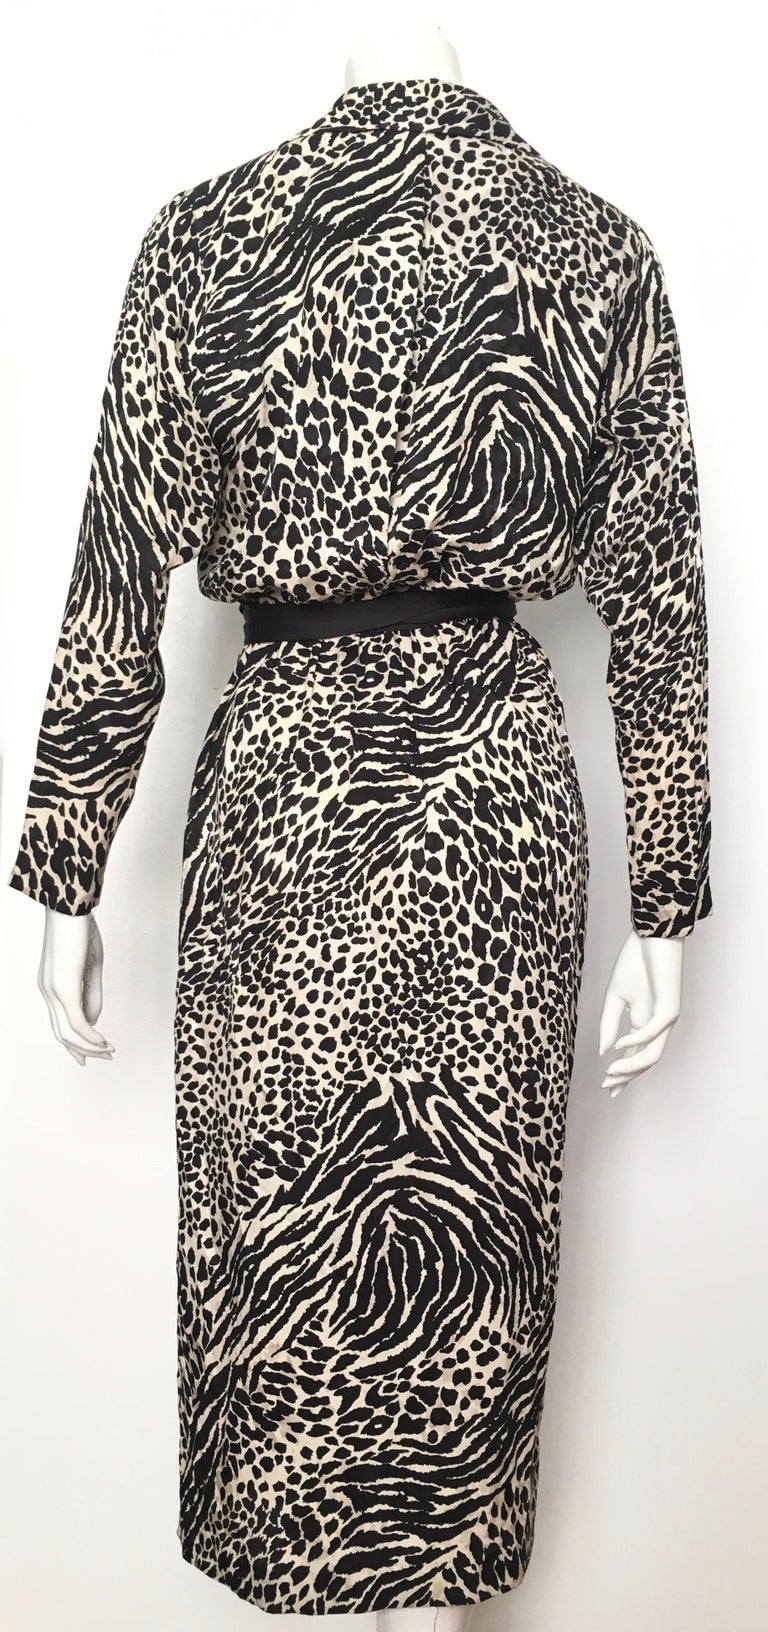 Geoffrey Beene for Lillie Rubin 1980 Animal Print Silk Dress Size 6. For Sale 6